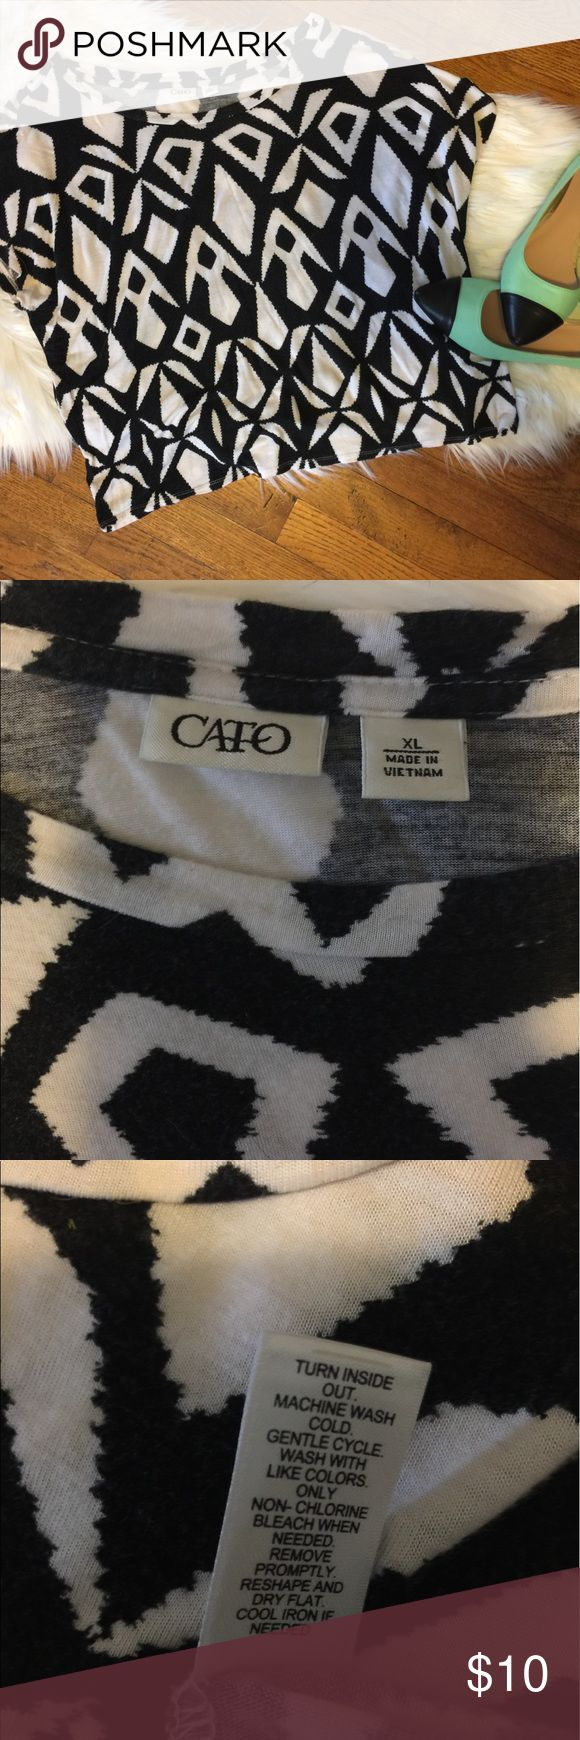 Black and White Cato's XL Aztec Print Crop Top Very pretty black and white Aztec print long crop top. 100% rayon. Very stretchy and comfortable. Some pilling. Great pre-loved condition. Cato Tops Crop Tops